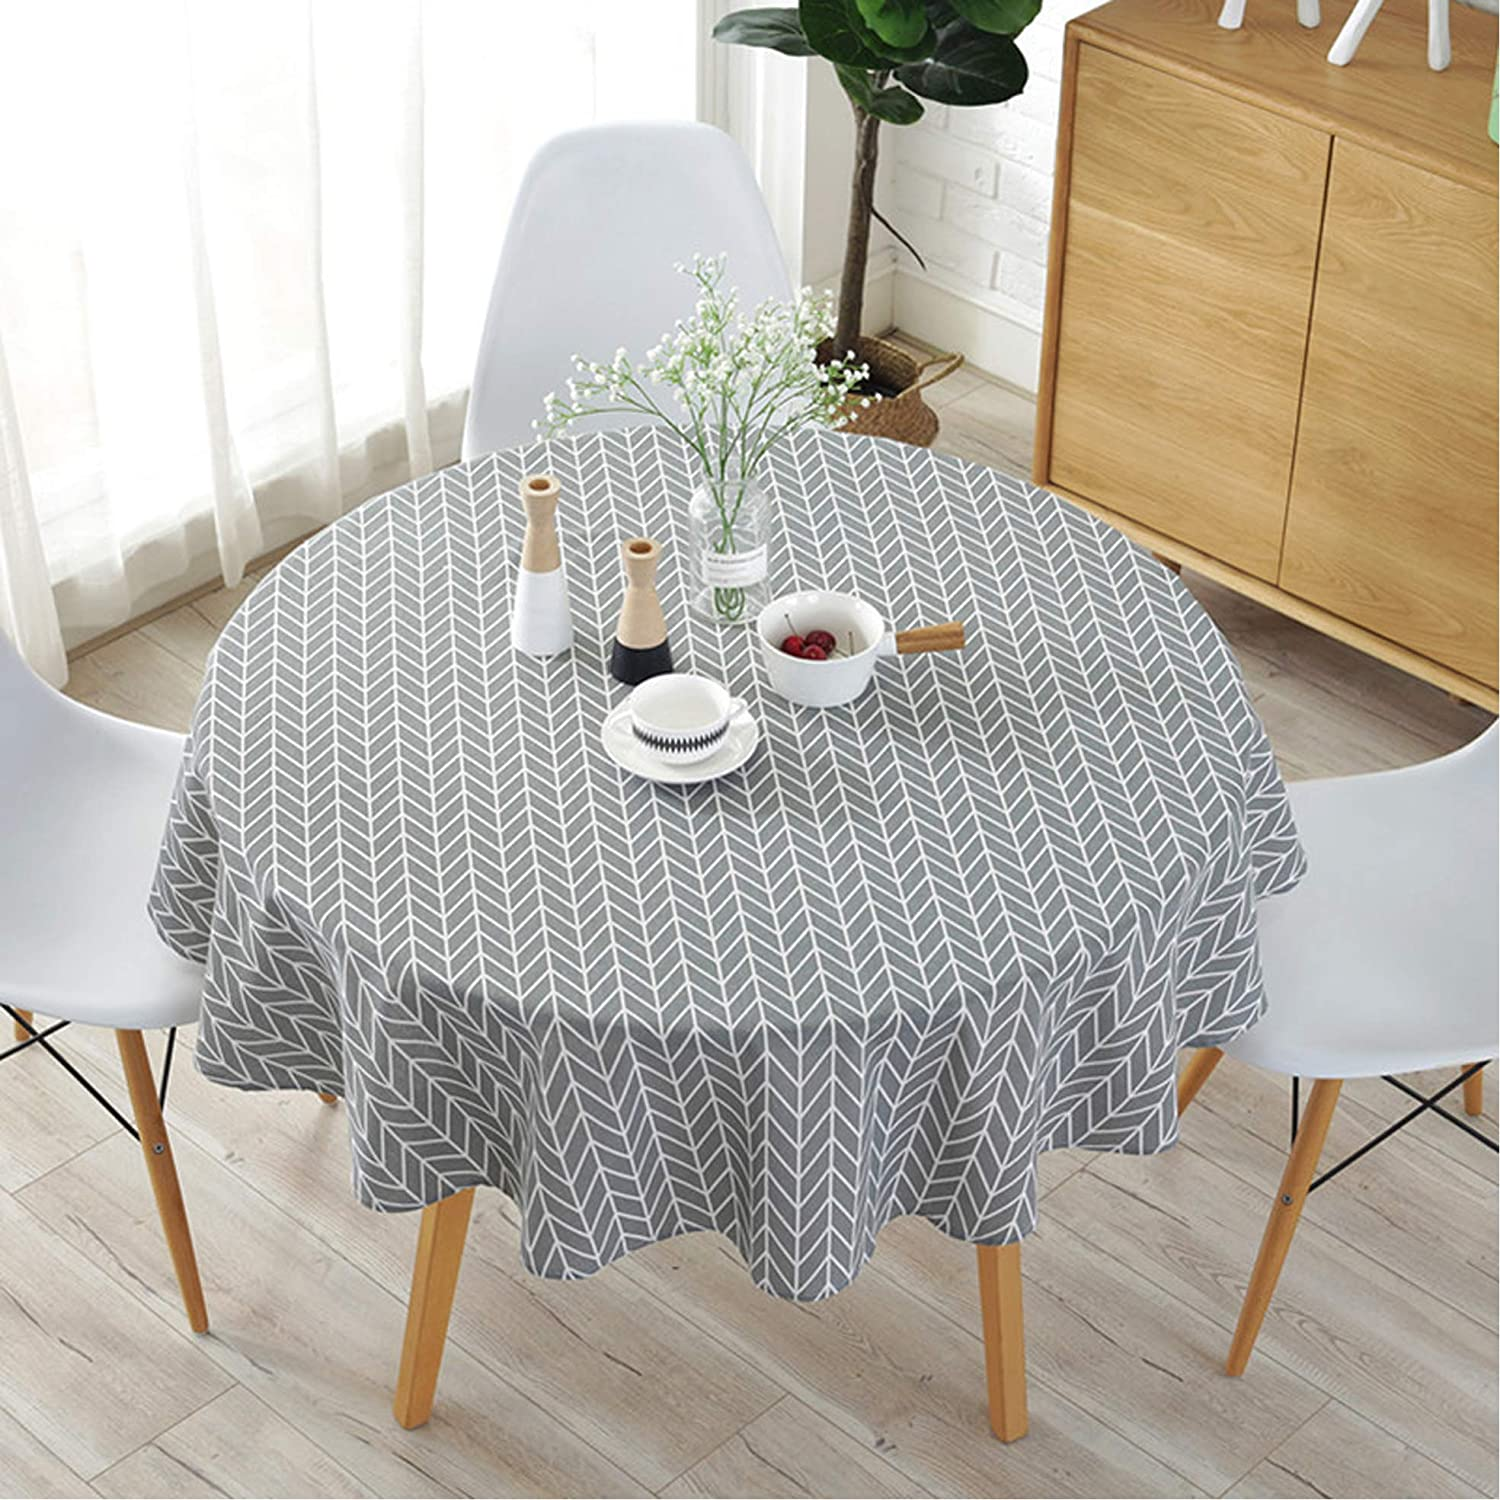 Round Table Cover Party Tablecloth Cloth Cotton Cover Home Kitchen Decor